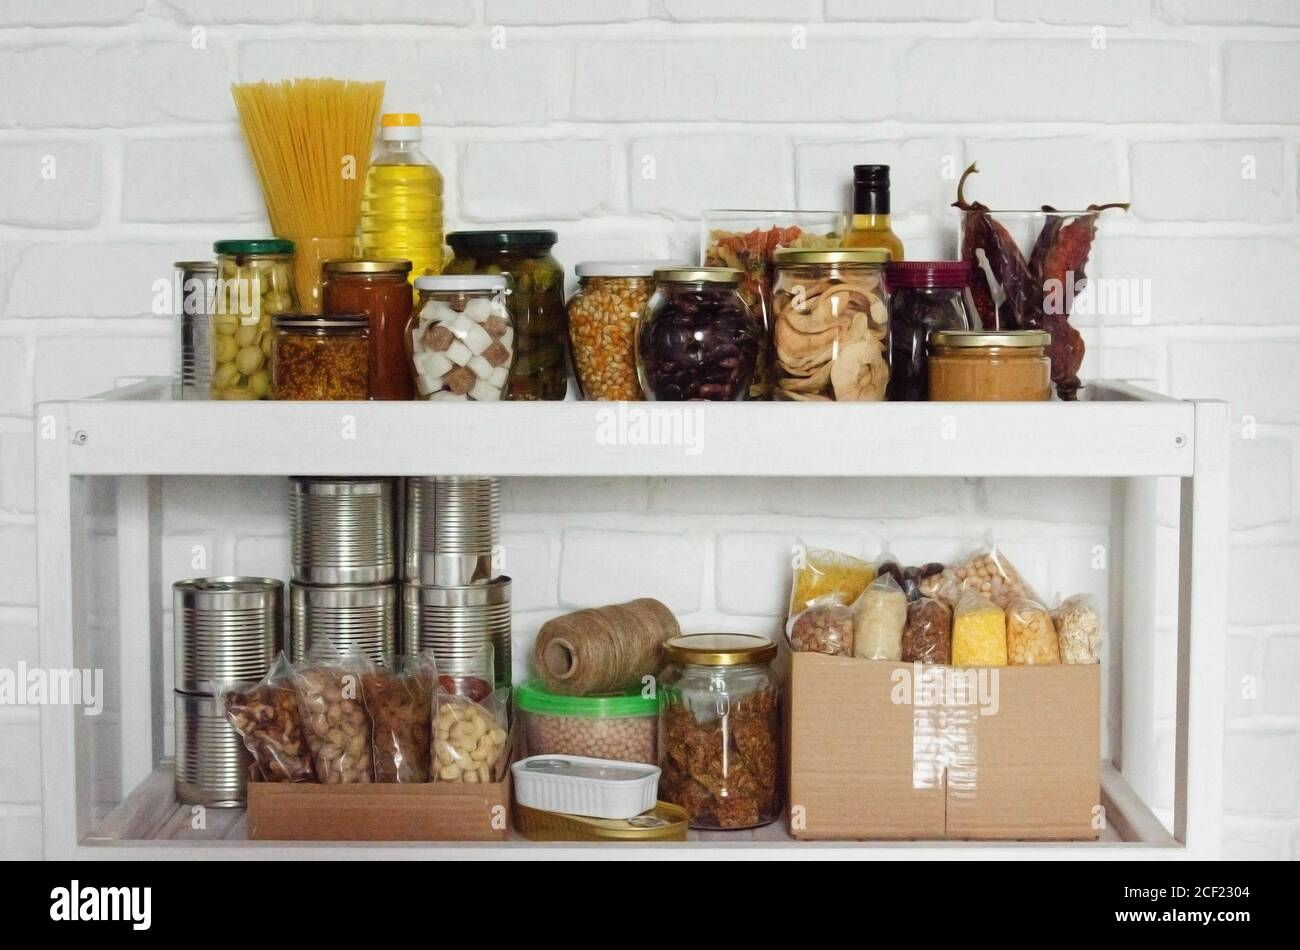 Set Of Long Storage Term Foods On Pantry Shelf Prepared For Disaster Emergency Conditions On Brick Wall Background Stock Photo Alamy